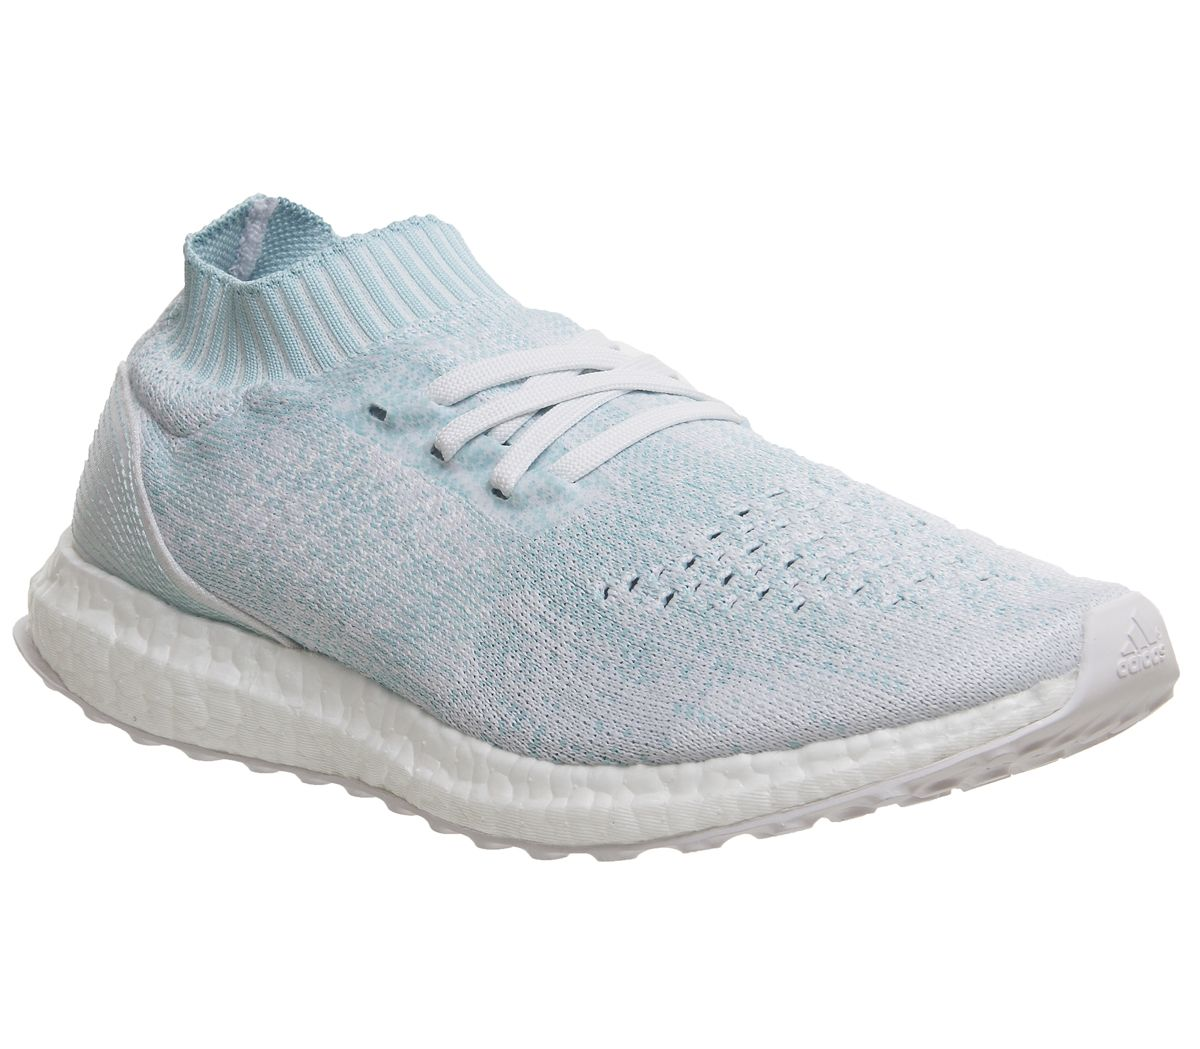 cf55c7527363c adidas Ultraboost Ultra Boost Uncaged Trainers Ice Blue White Parley ...